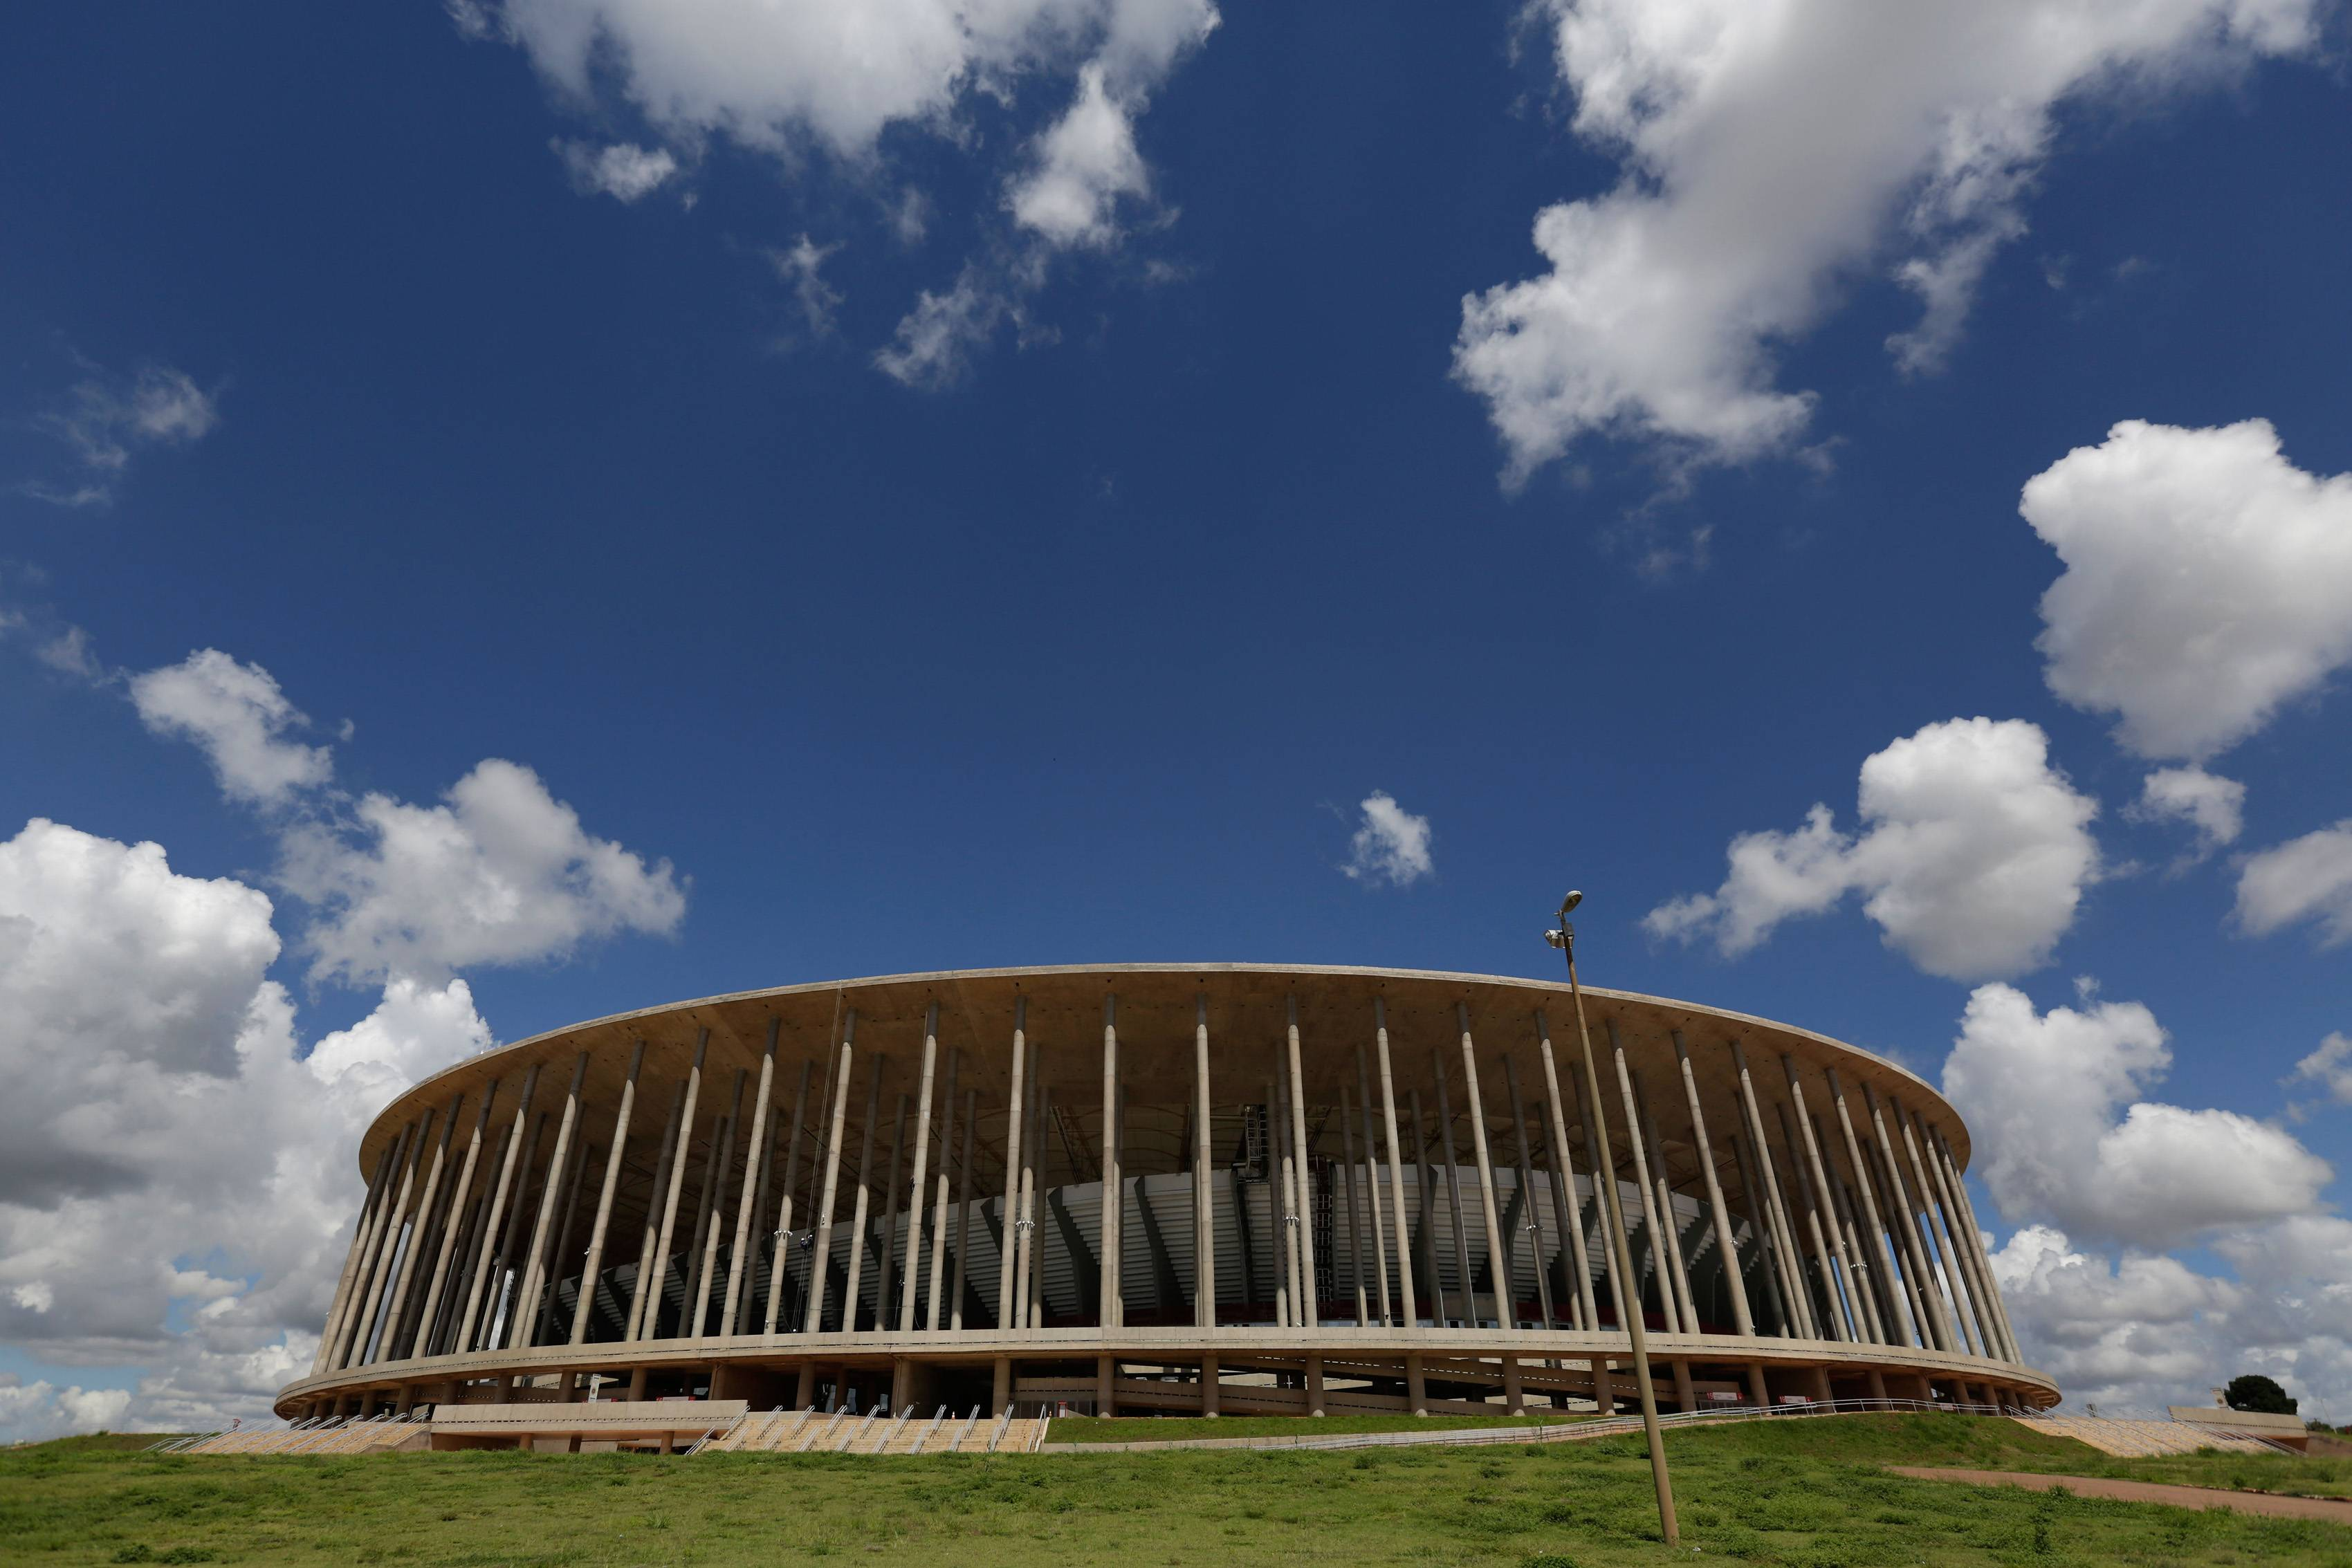 A view of the Mane Garrincha stadium, in Brasilia, Brazil. The cost of building Brasilia's World Cup stadium has nearly tripled, largely due to allegedly fraudulent billing, government auditors say. The spike in costs has made it the world's second-most expensive soccer arena, even though the city has no major professional team.